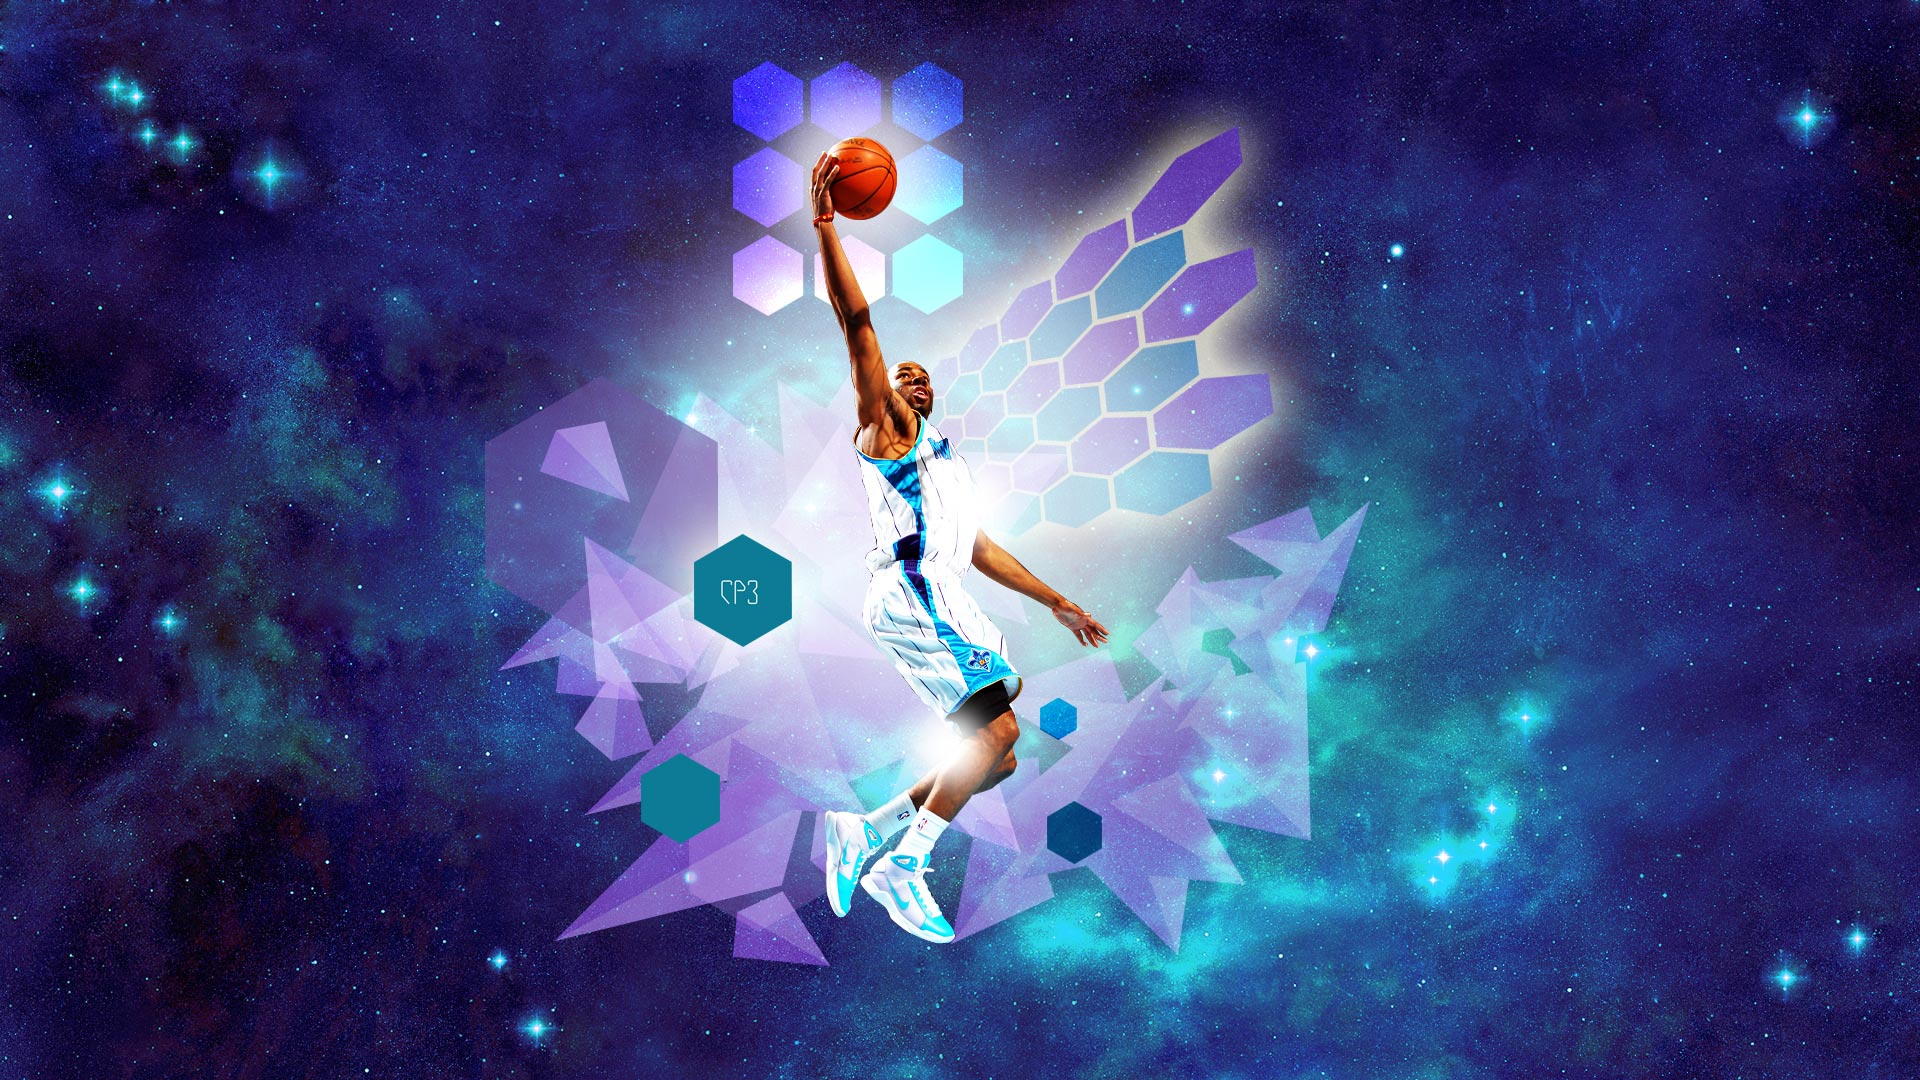 CP3 Layup In Space Widescreen Wallpaper Basketball Wallpapers at 1920x1080